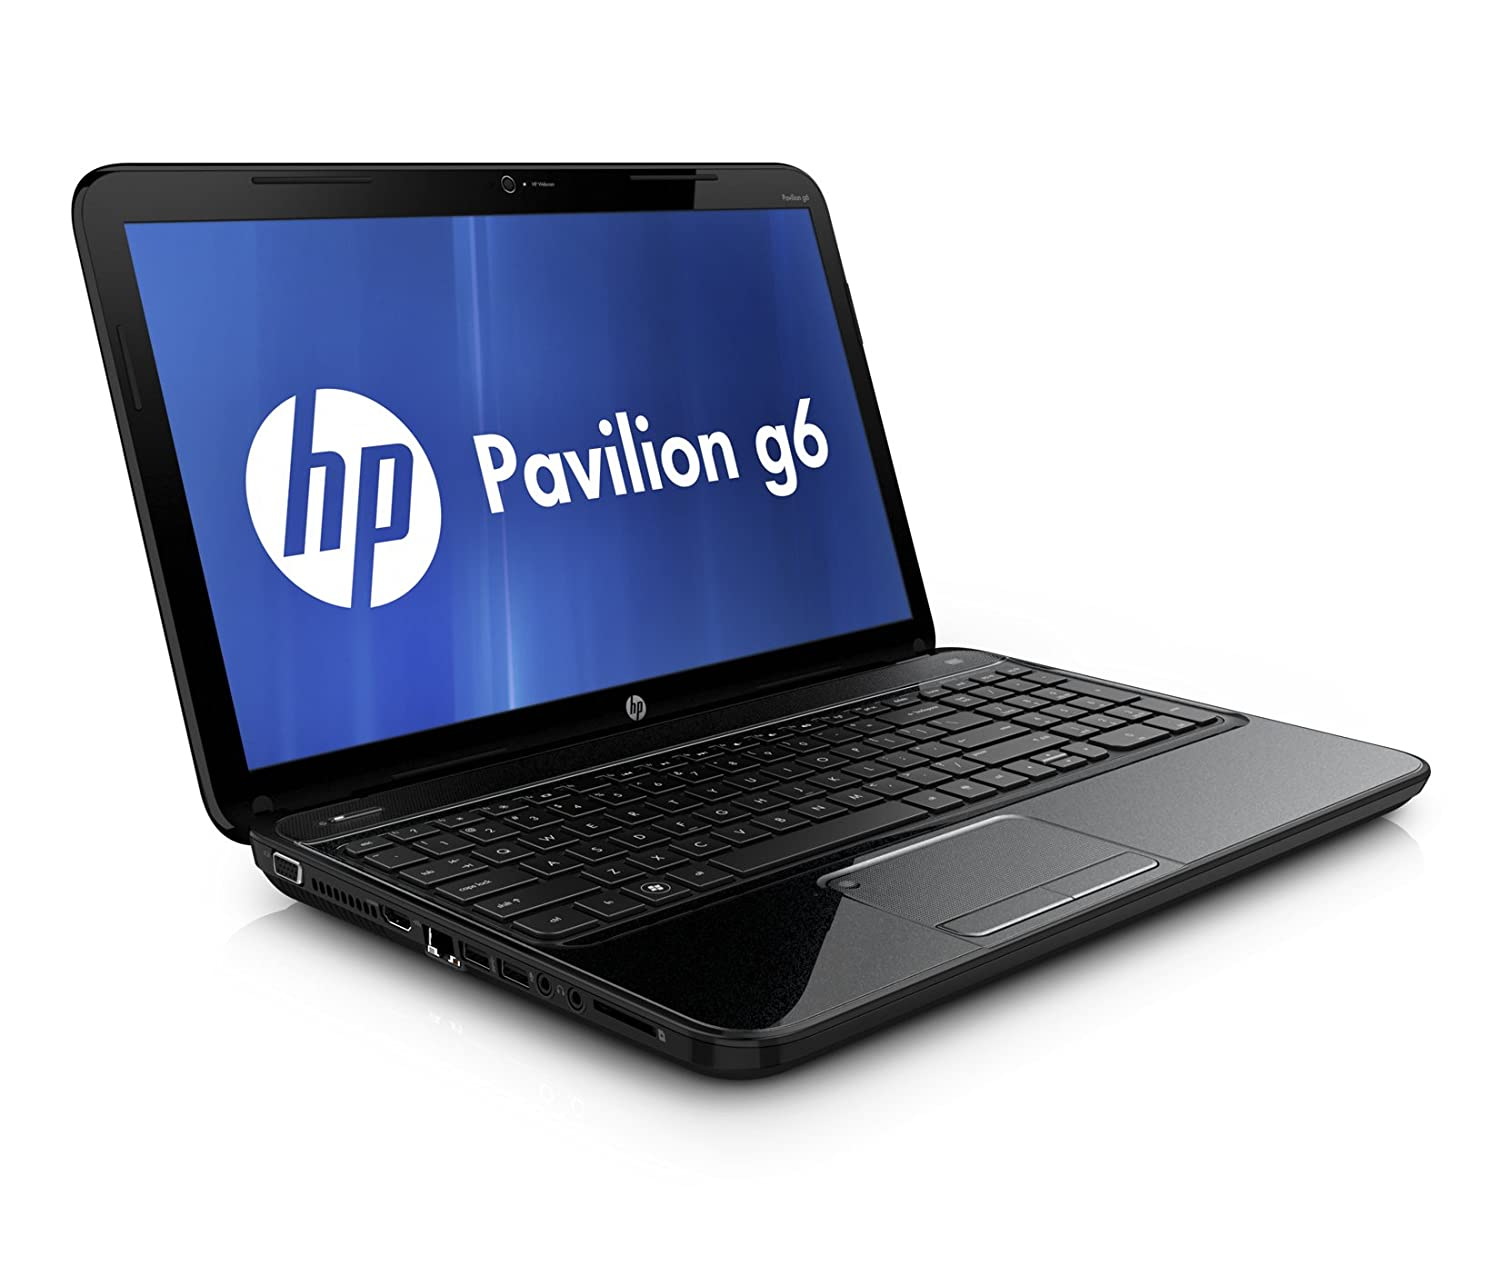 HP PAVILION G6 VIDEO CARD DESCARGAR DRIVER